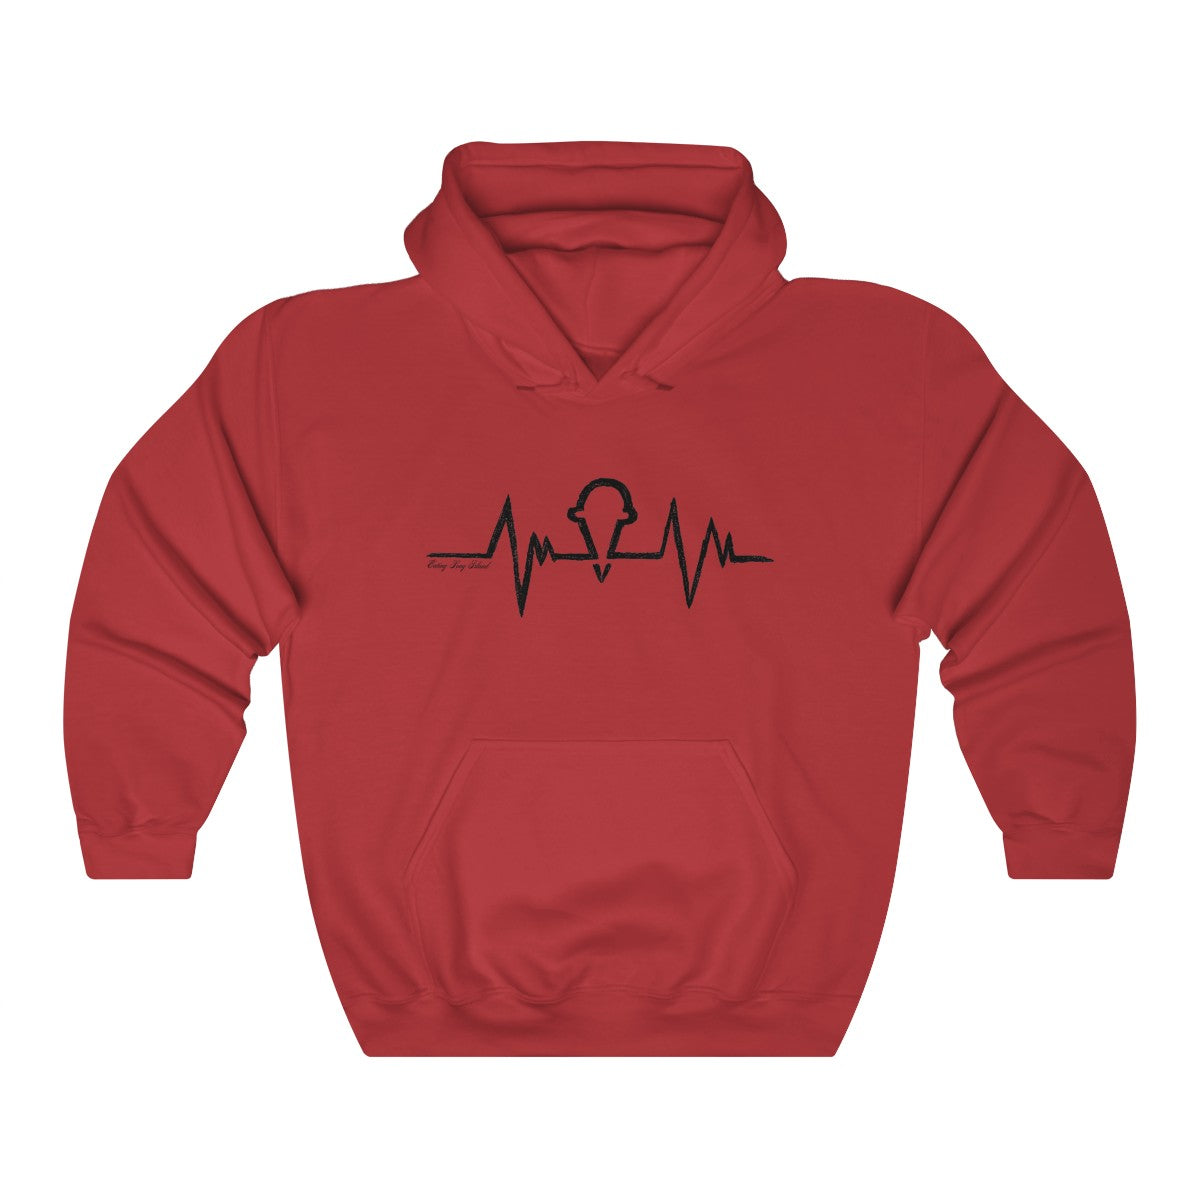 """Ice Cream Heartbeat"" Unisex Heavy Blend™ Hooded Sweatshirt - Eating Long Island Inc."